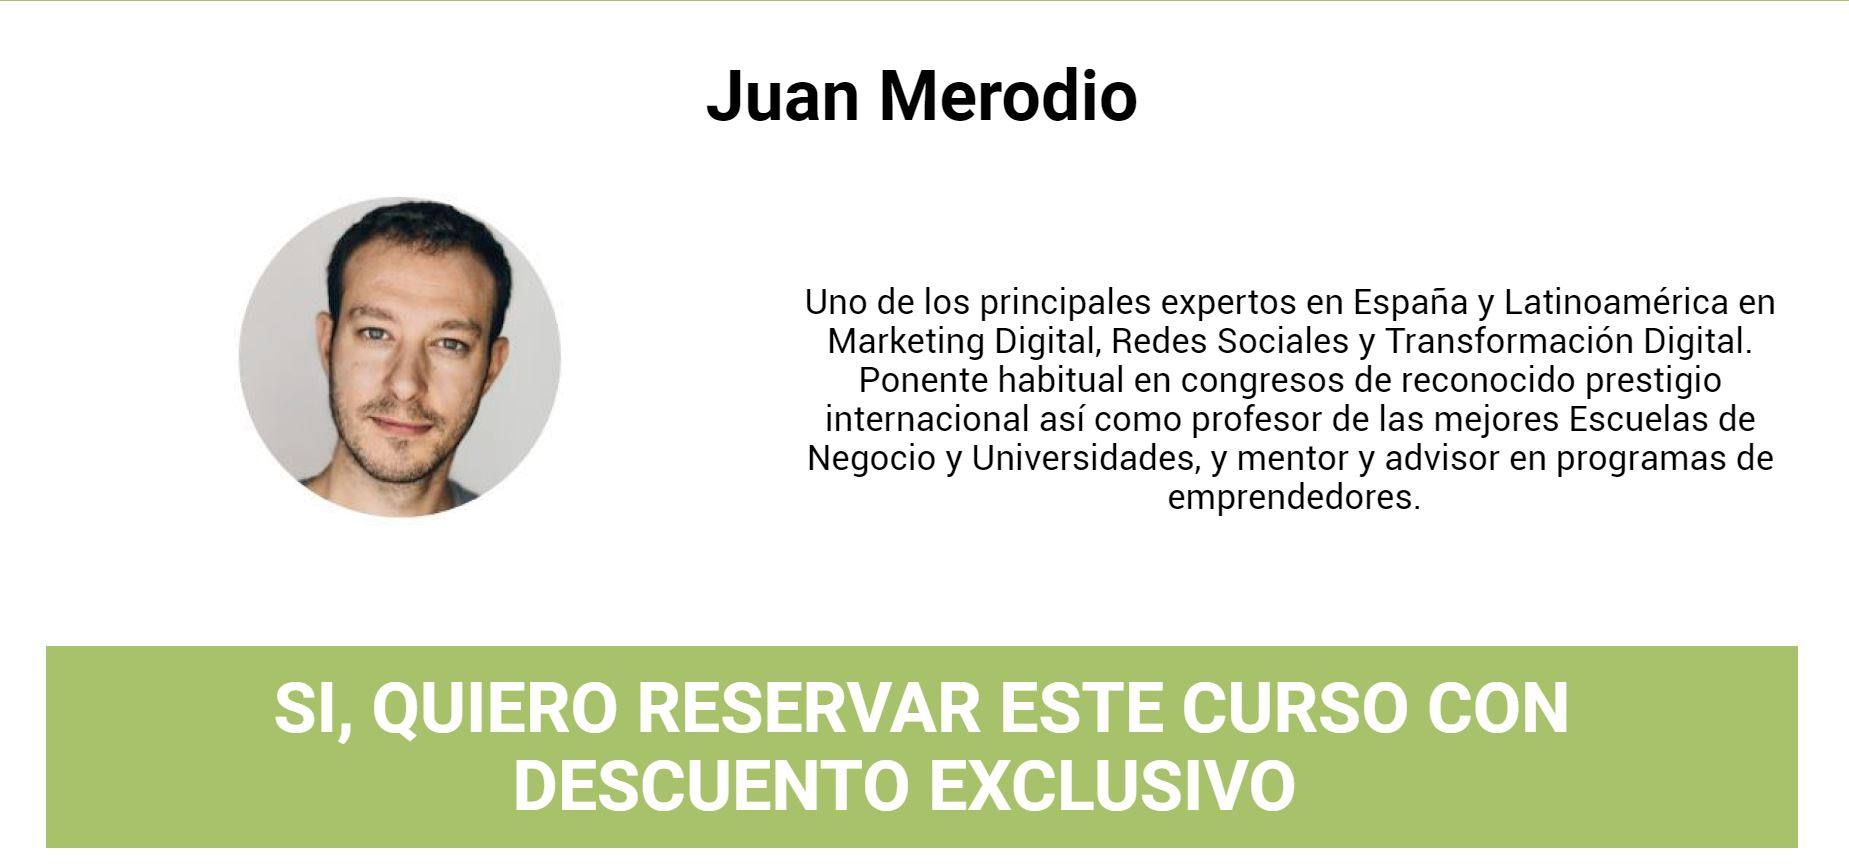 Juan Merodio Curso de Experto en Marketing Digital [Español]